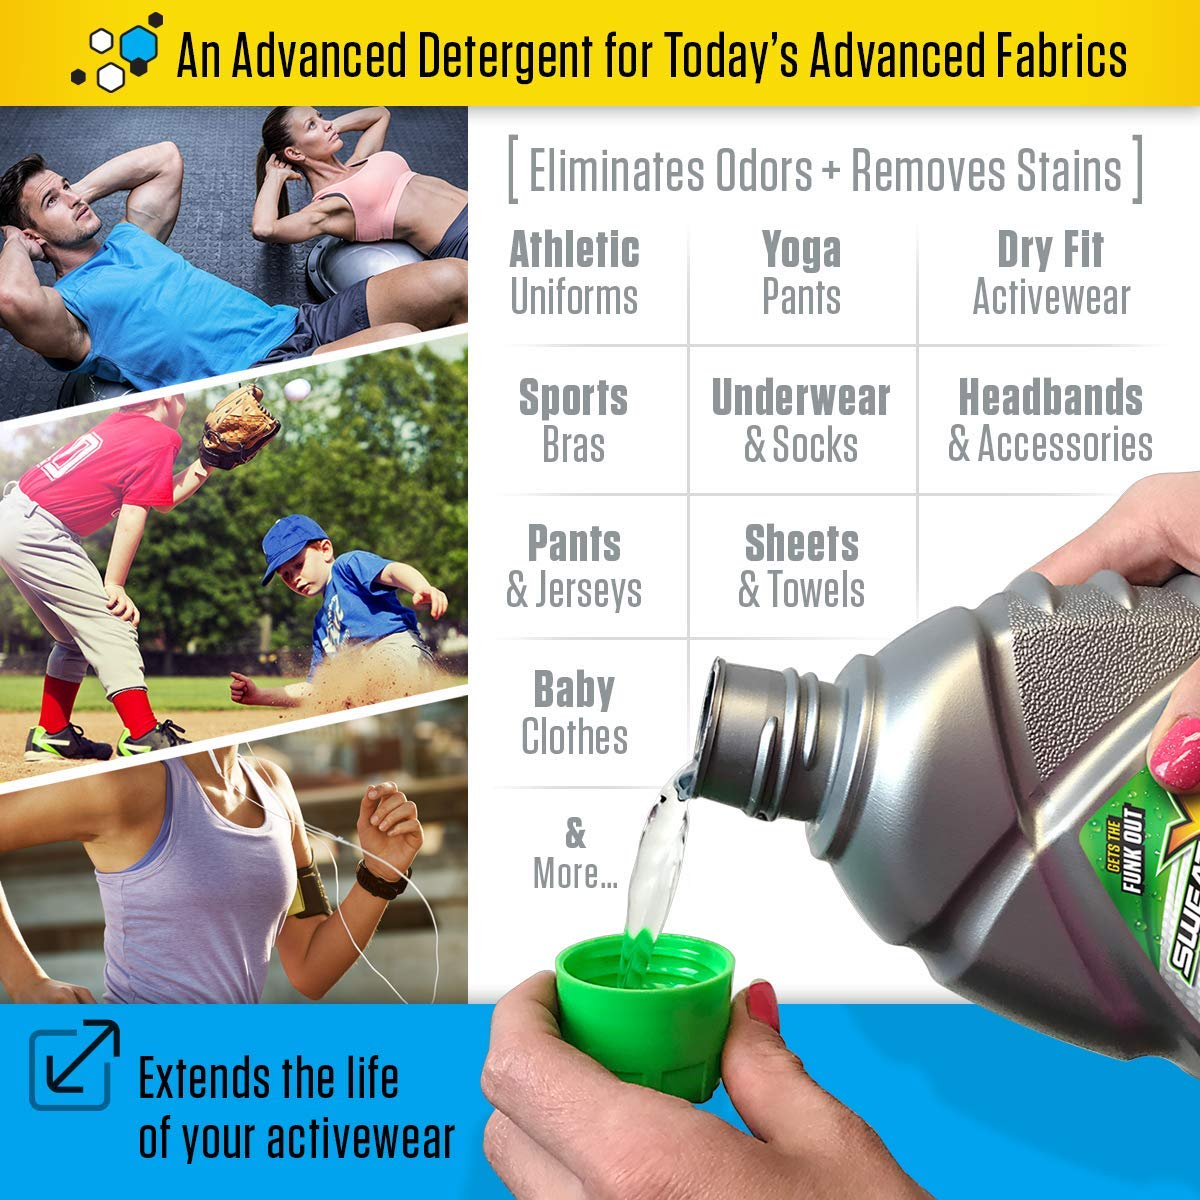 Sweat X Sport Extreme Laundry Detergent, High Performance Sports Wash for Activewear and All Fabrics, 45 Loads by SWEATX (Image #5)